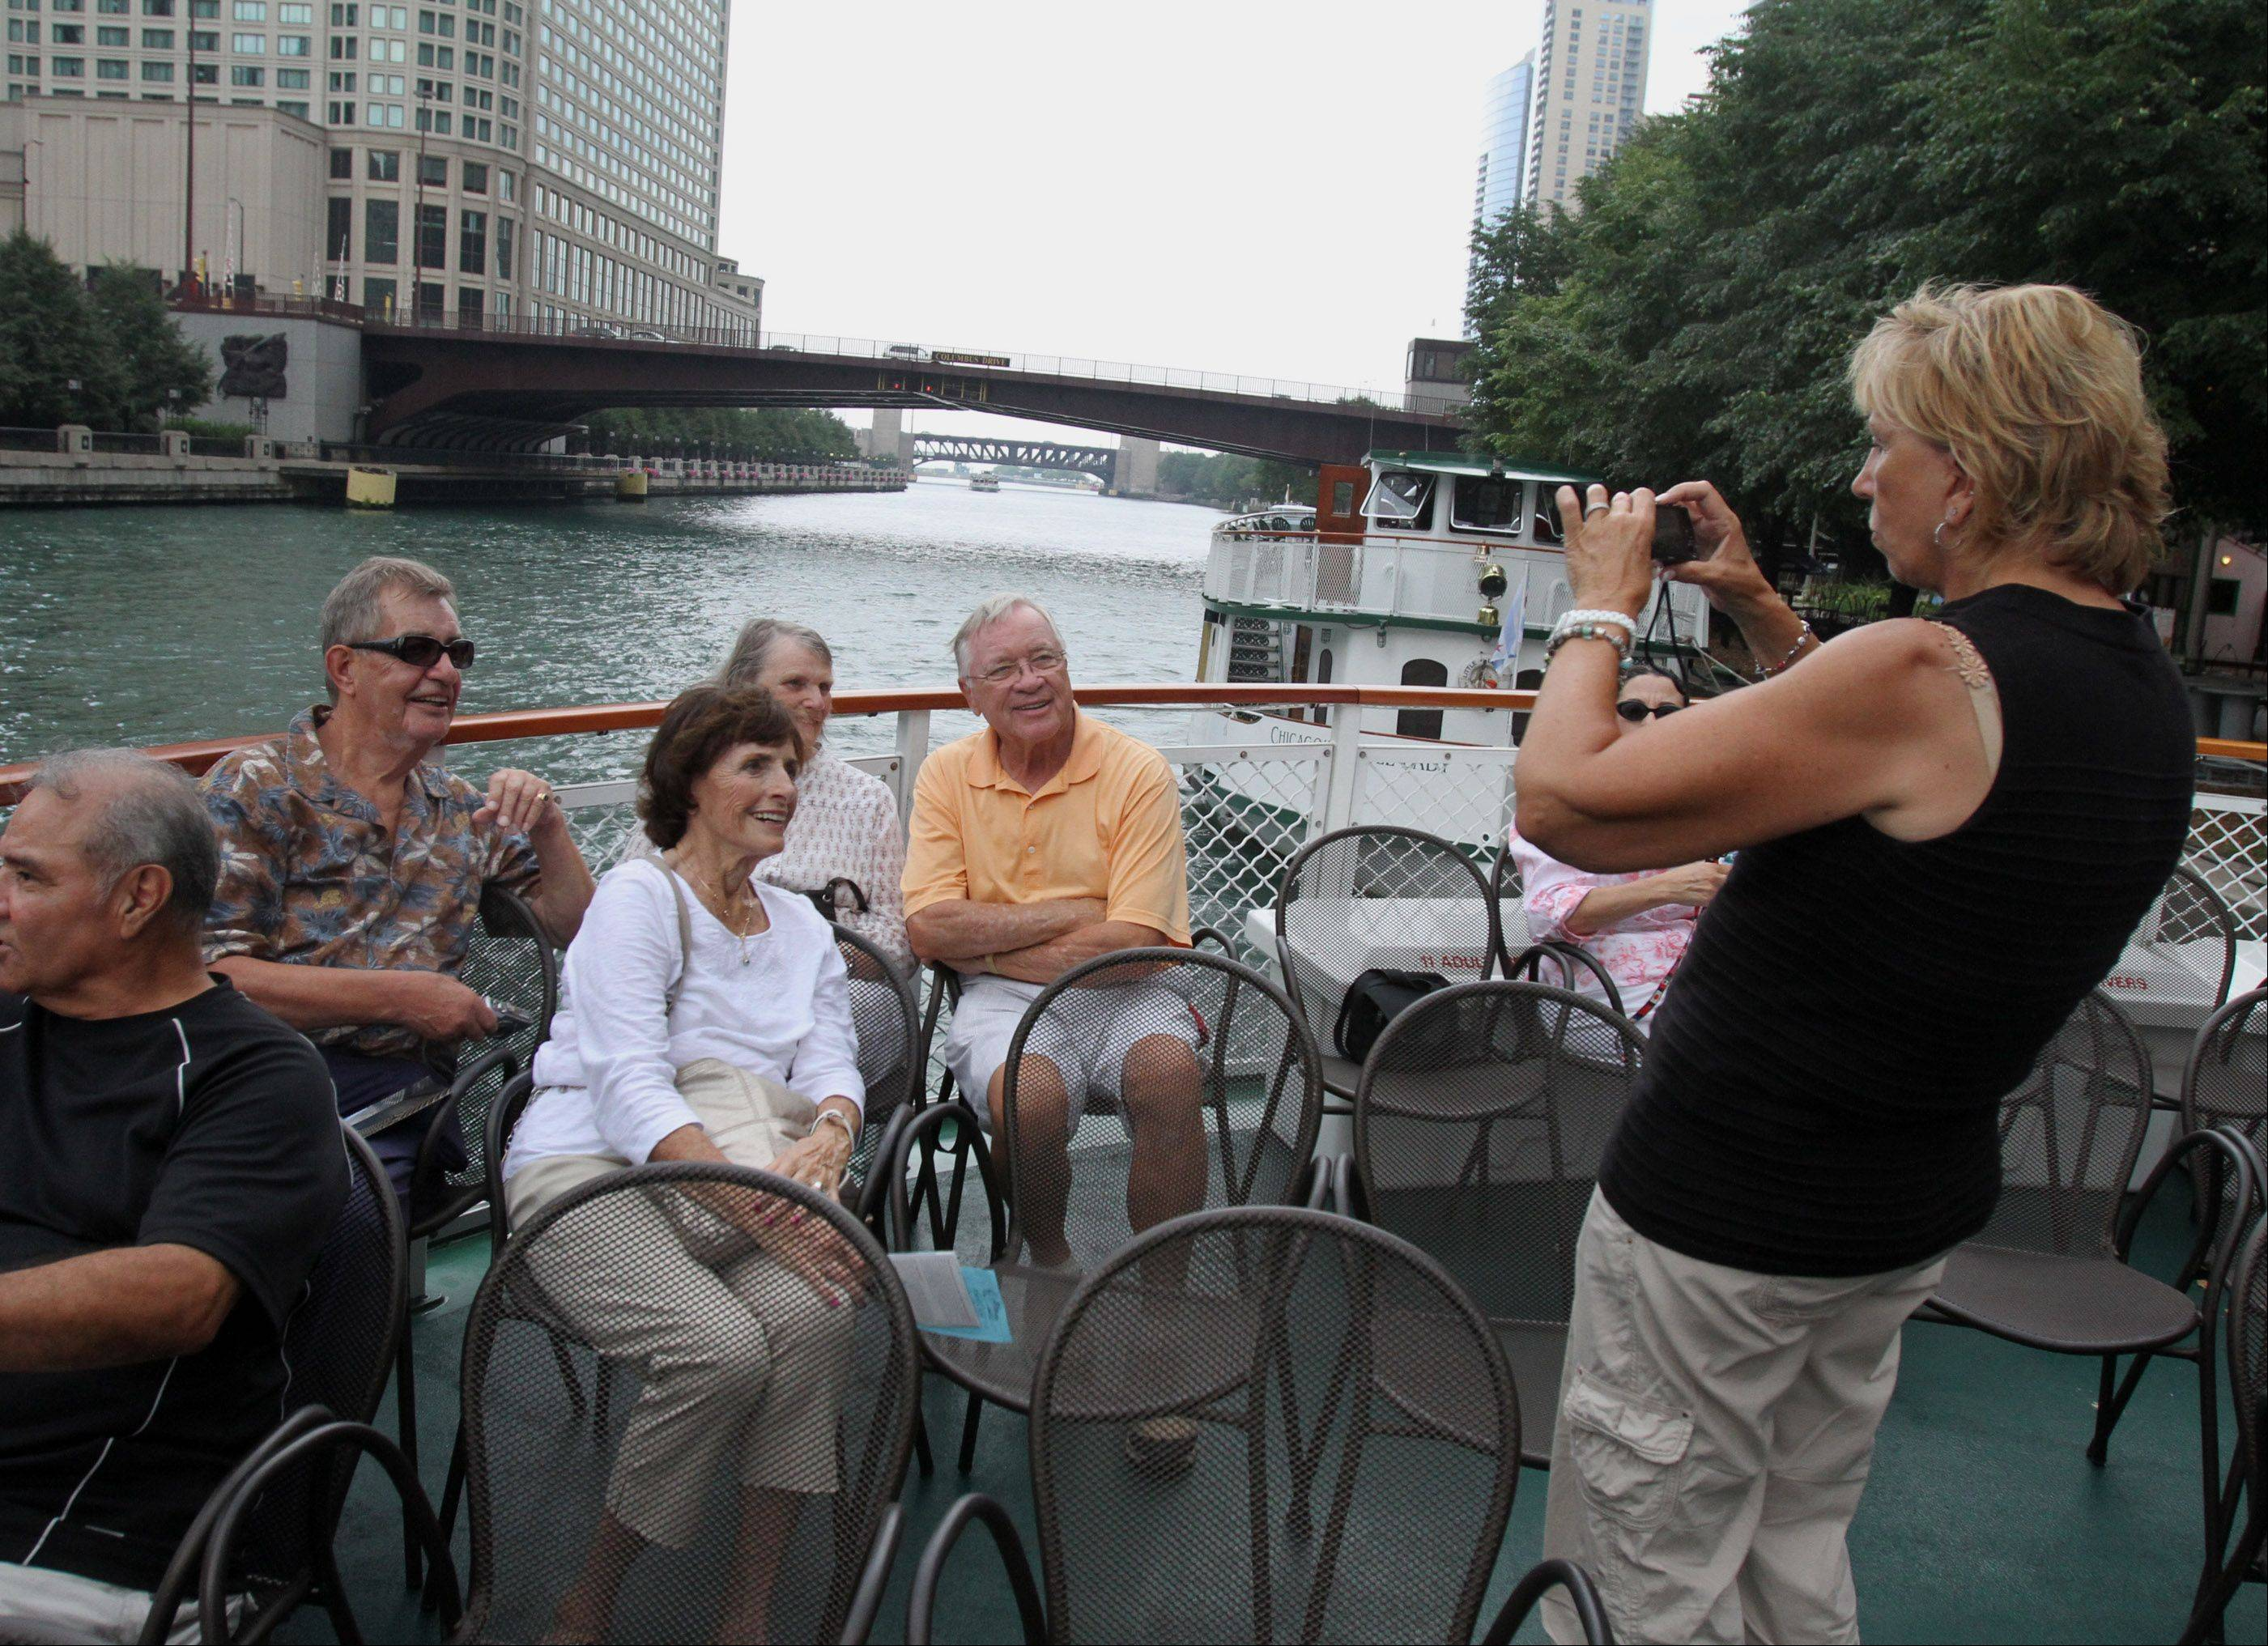 Patricia Grund of Arlington Heights, a Chicago Architecture Foundation docent, takes a picture for a tourist on board a Chicago's First Lady cruise boat.